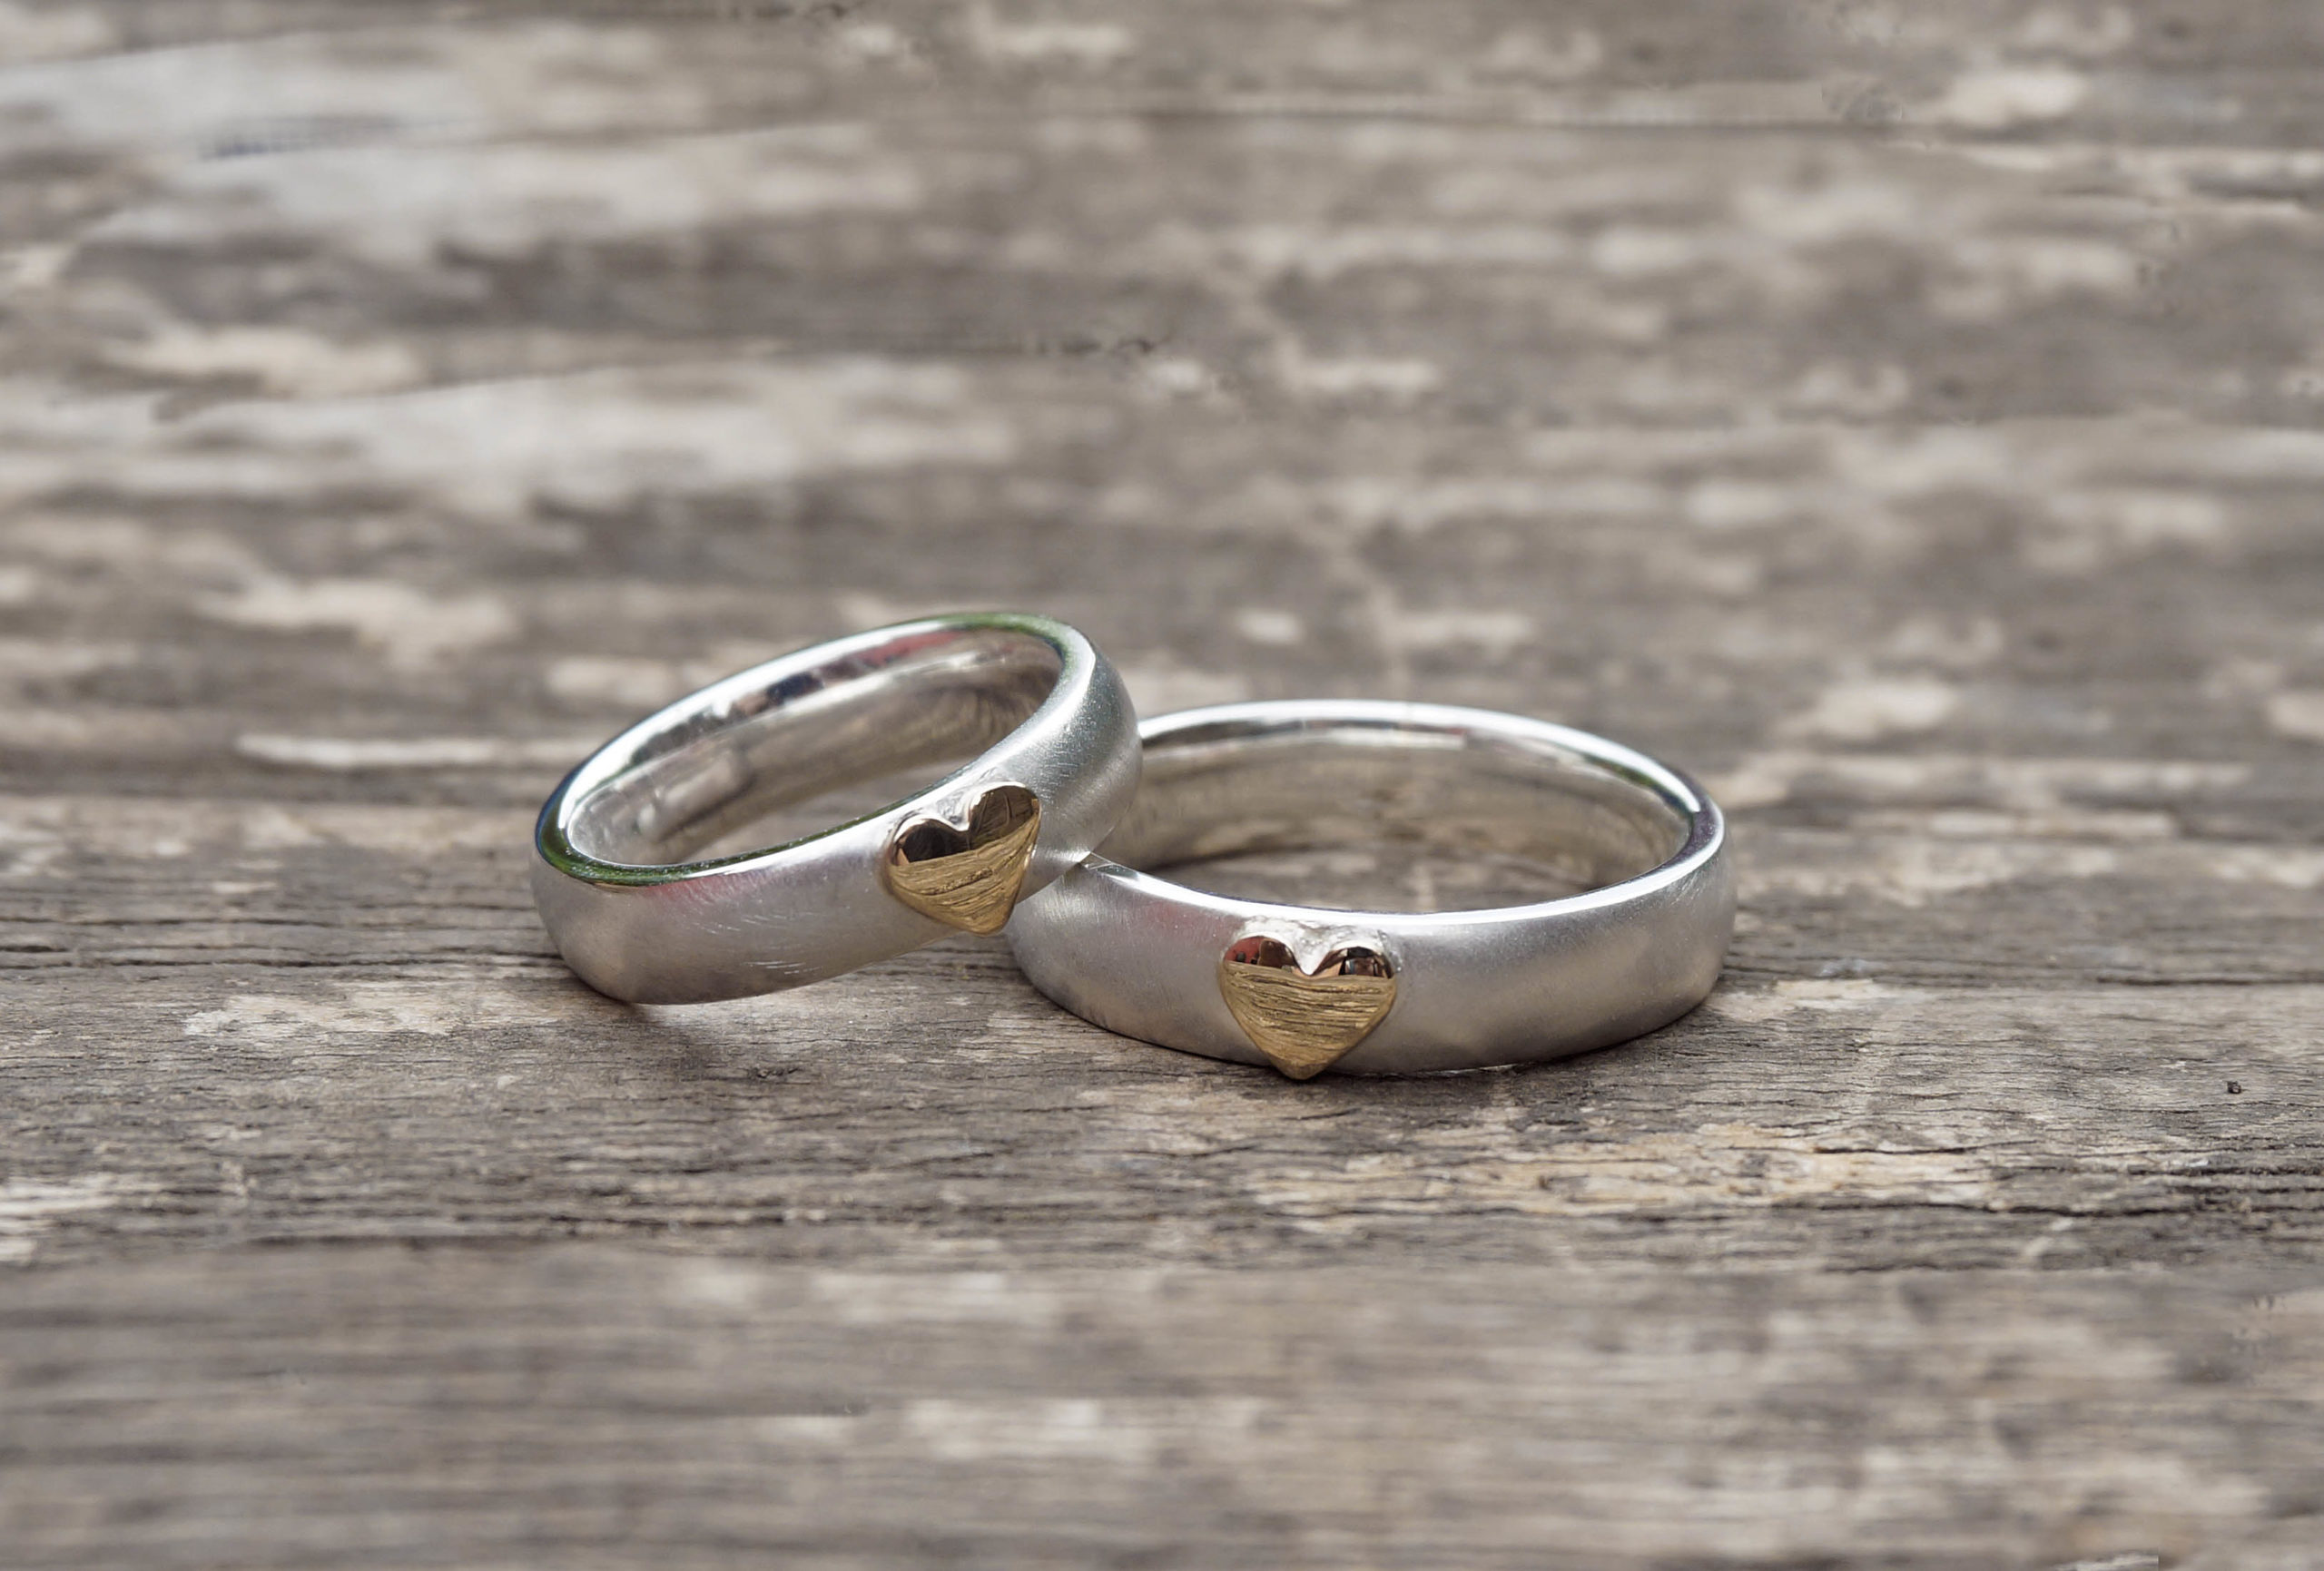 Park Road Jewellery, Bespoke Handmade Engagement Wedding Ring 18ct Yellow Gold Silver Personalized Matching Ring